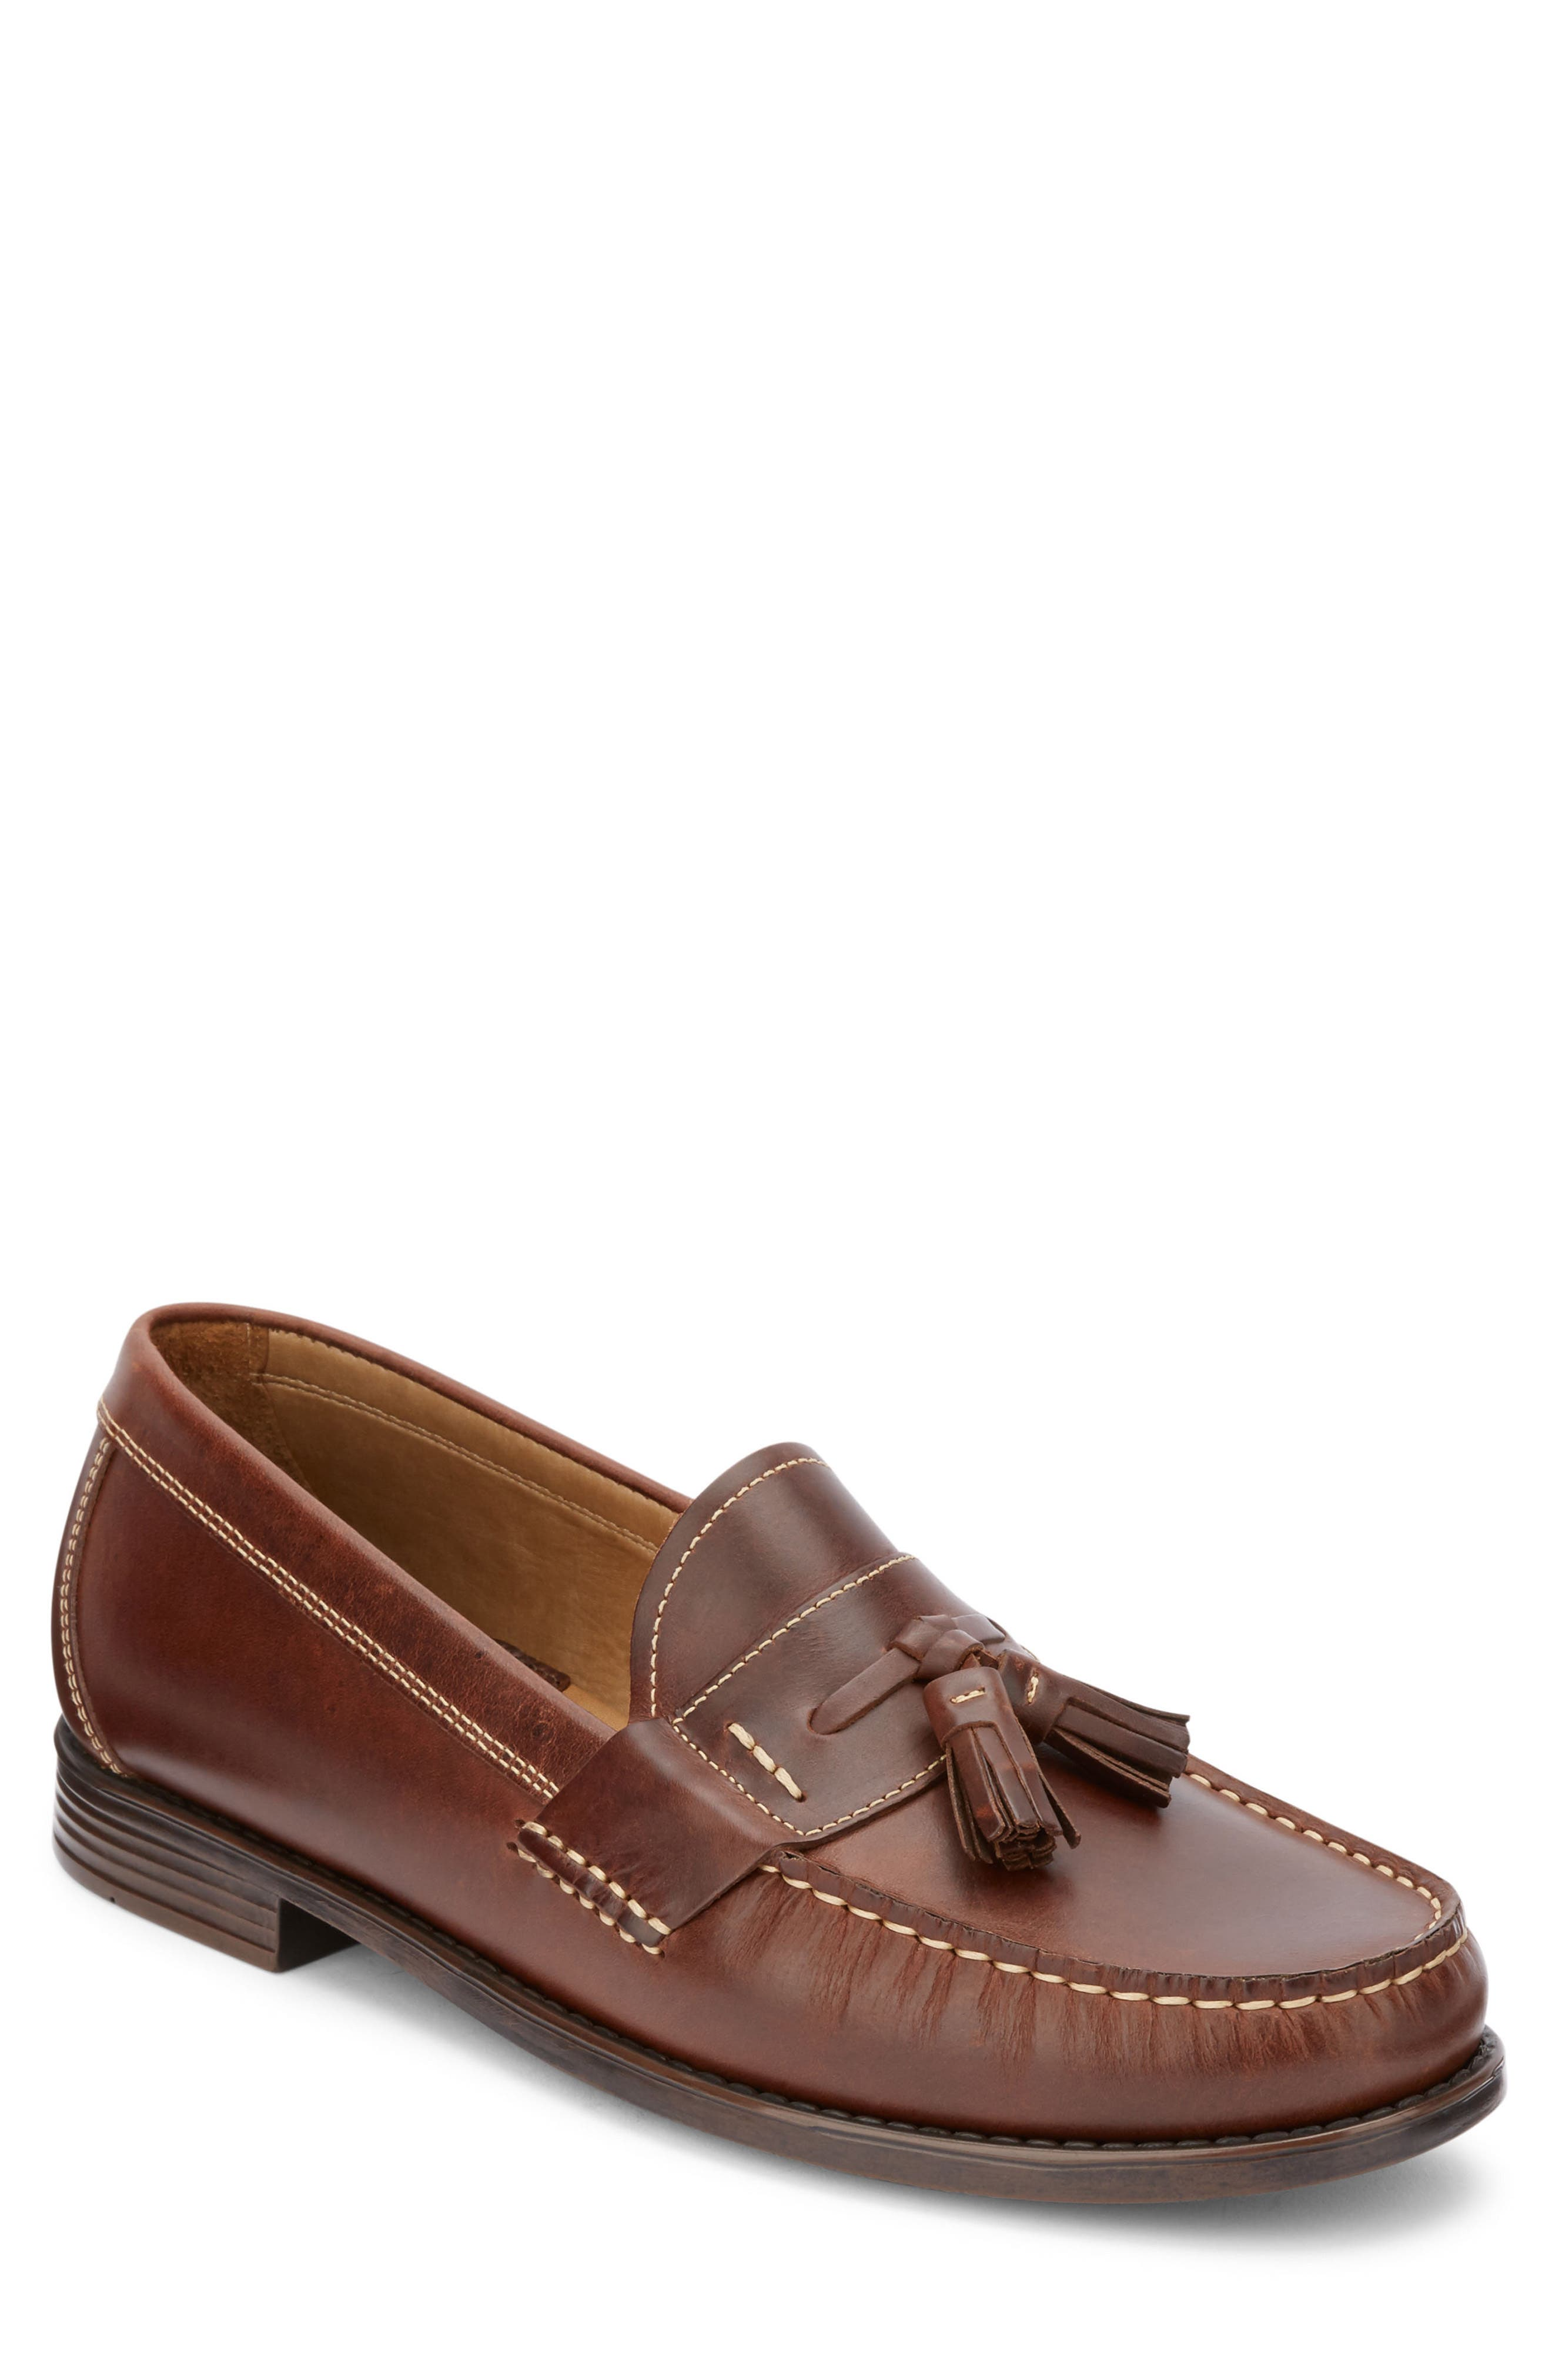 Wallace Tassel Loafer,                             Main thumbnail 1, color,                             DARK BROWN LEATHER